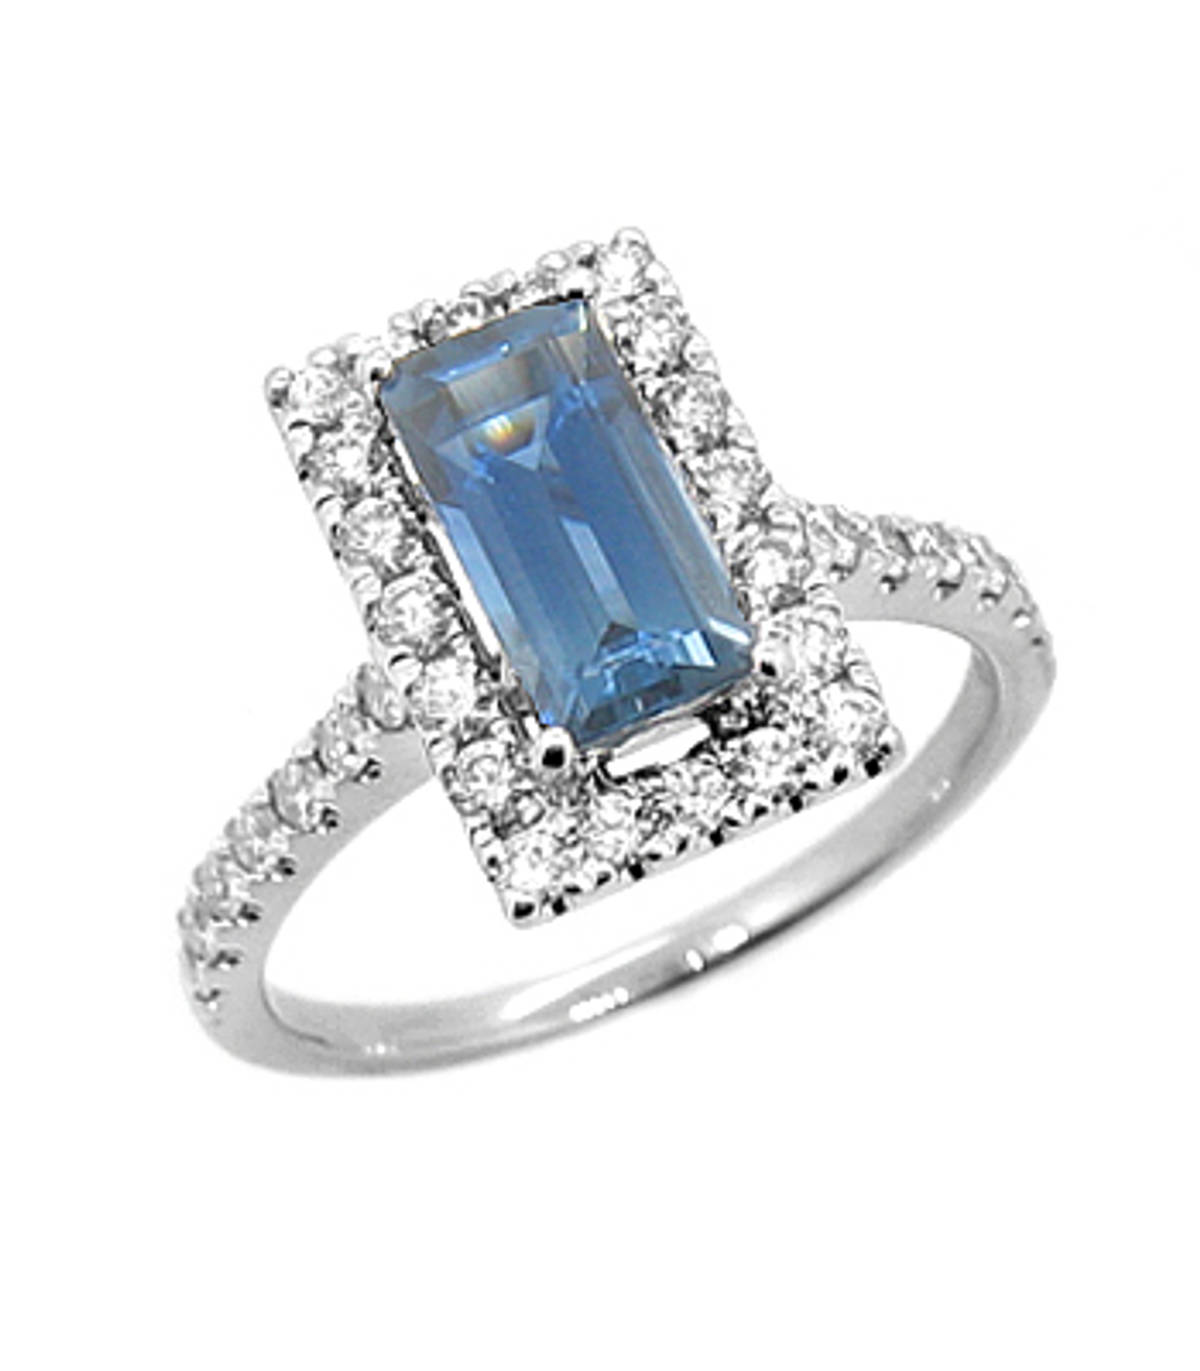 Sapphire/diamond cluster ring 18 ct white gold